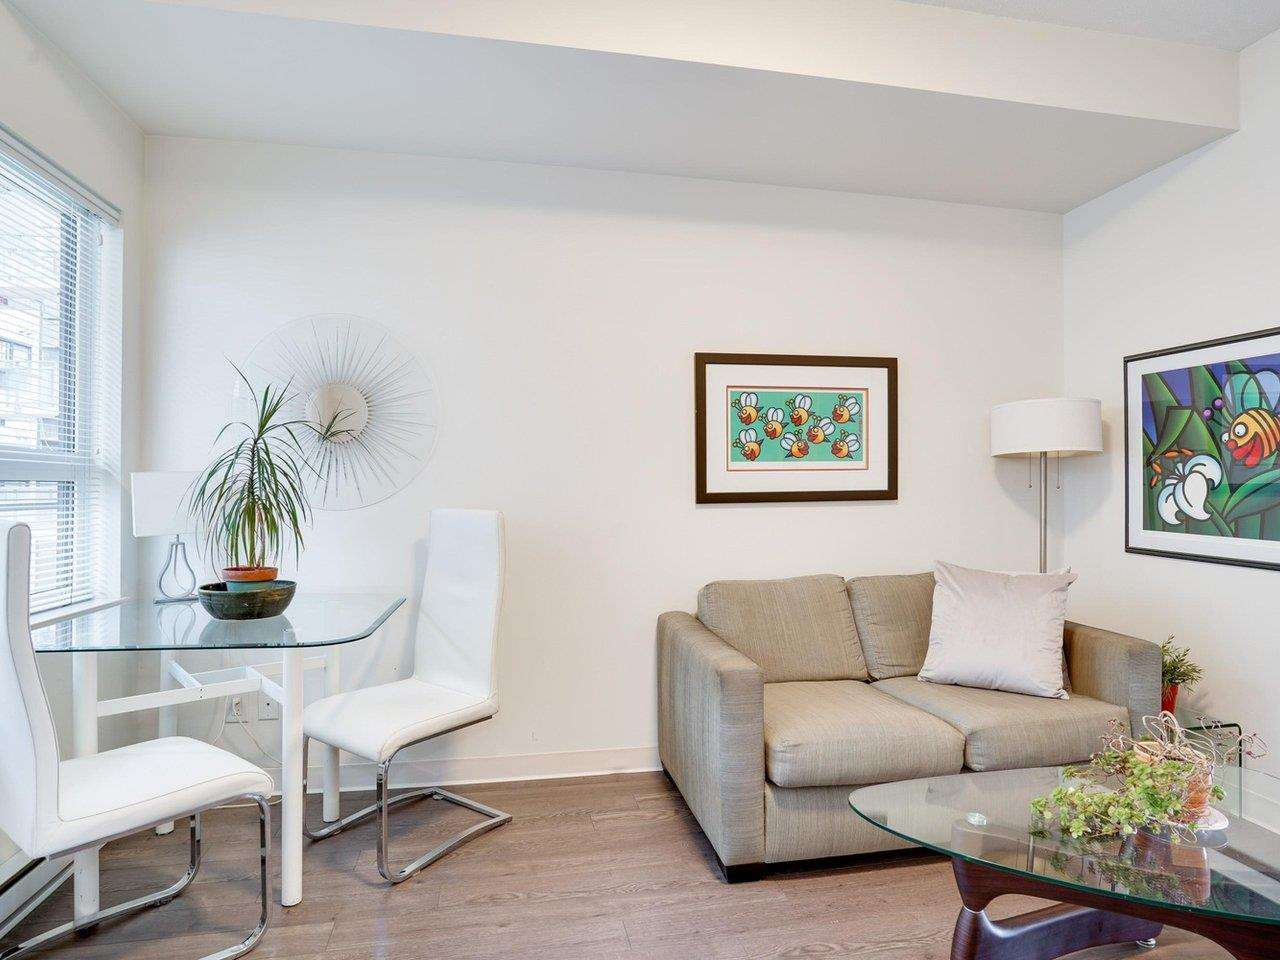 419 138 E HASTINGS STREET - Downtown VE Apartment/Condo for sale, 1 Bedroom (R2591060) - #5